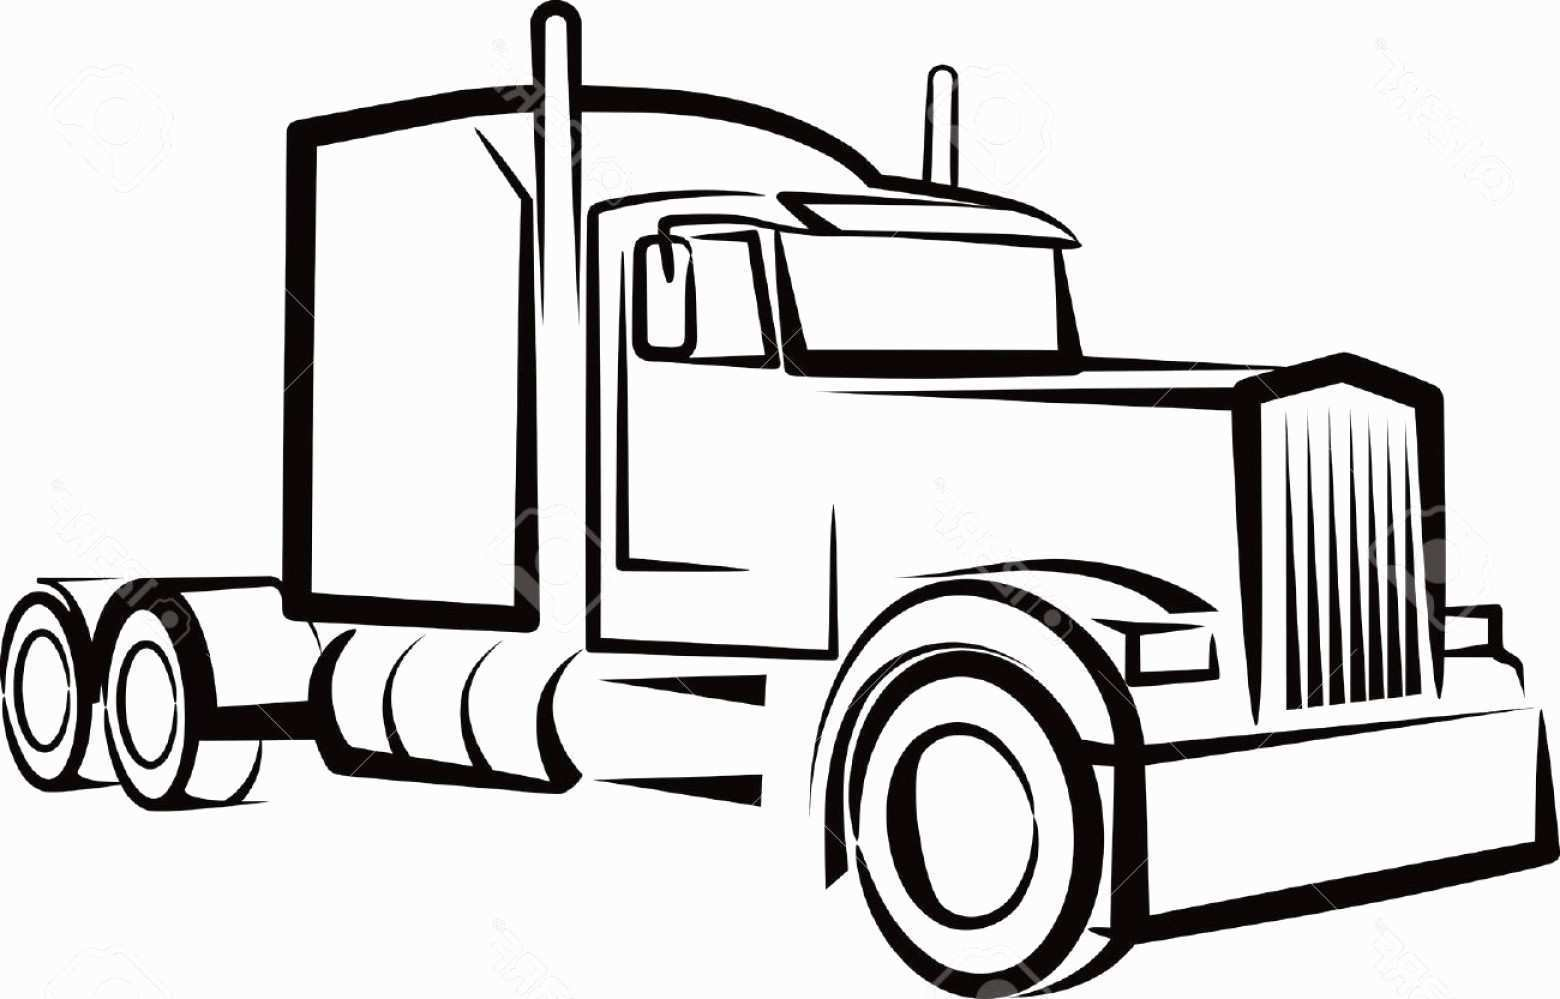 1560x999 semi truck drawing prettier semi truck outline drawing simple